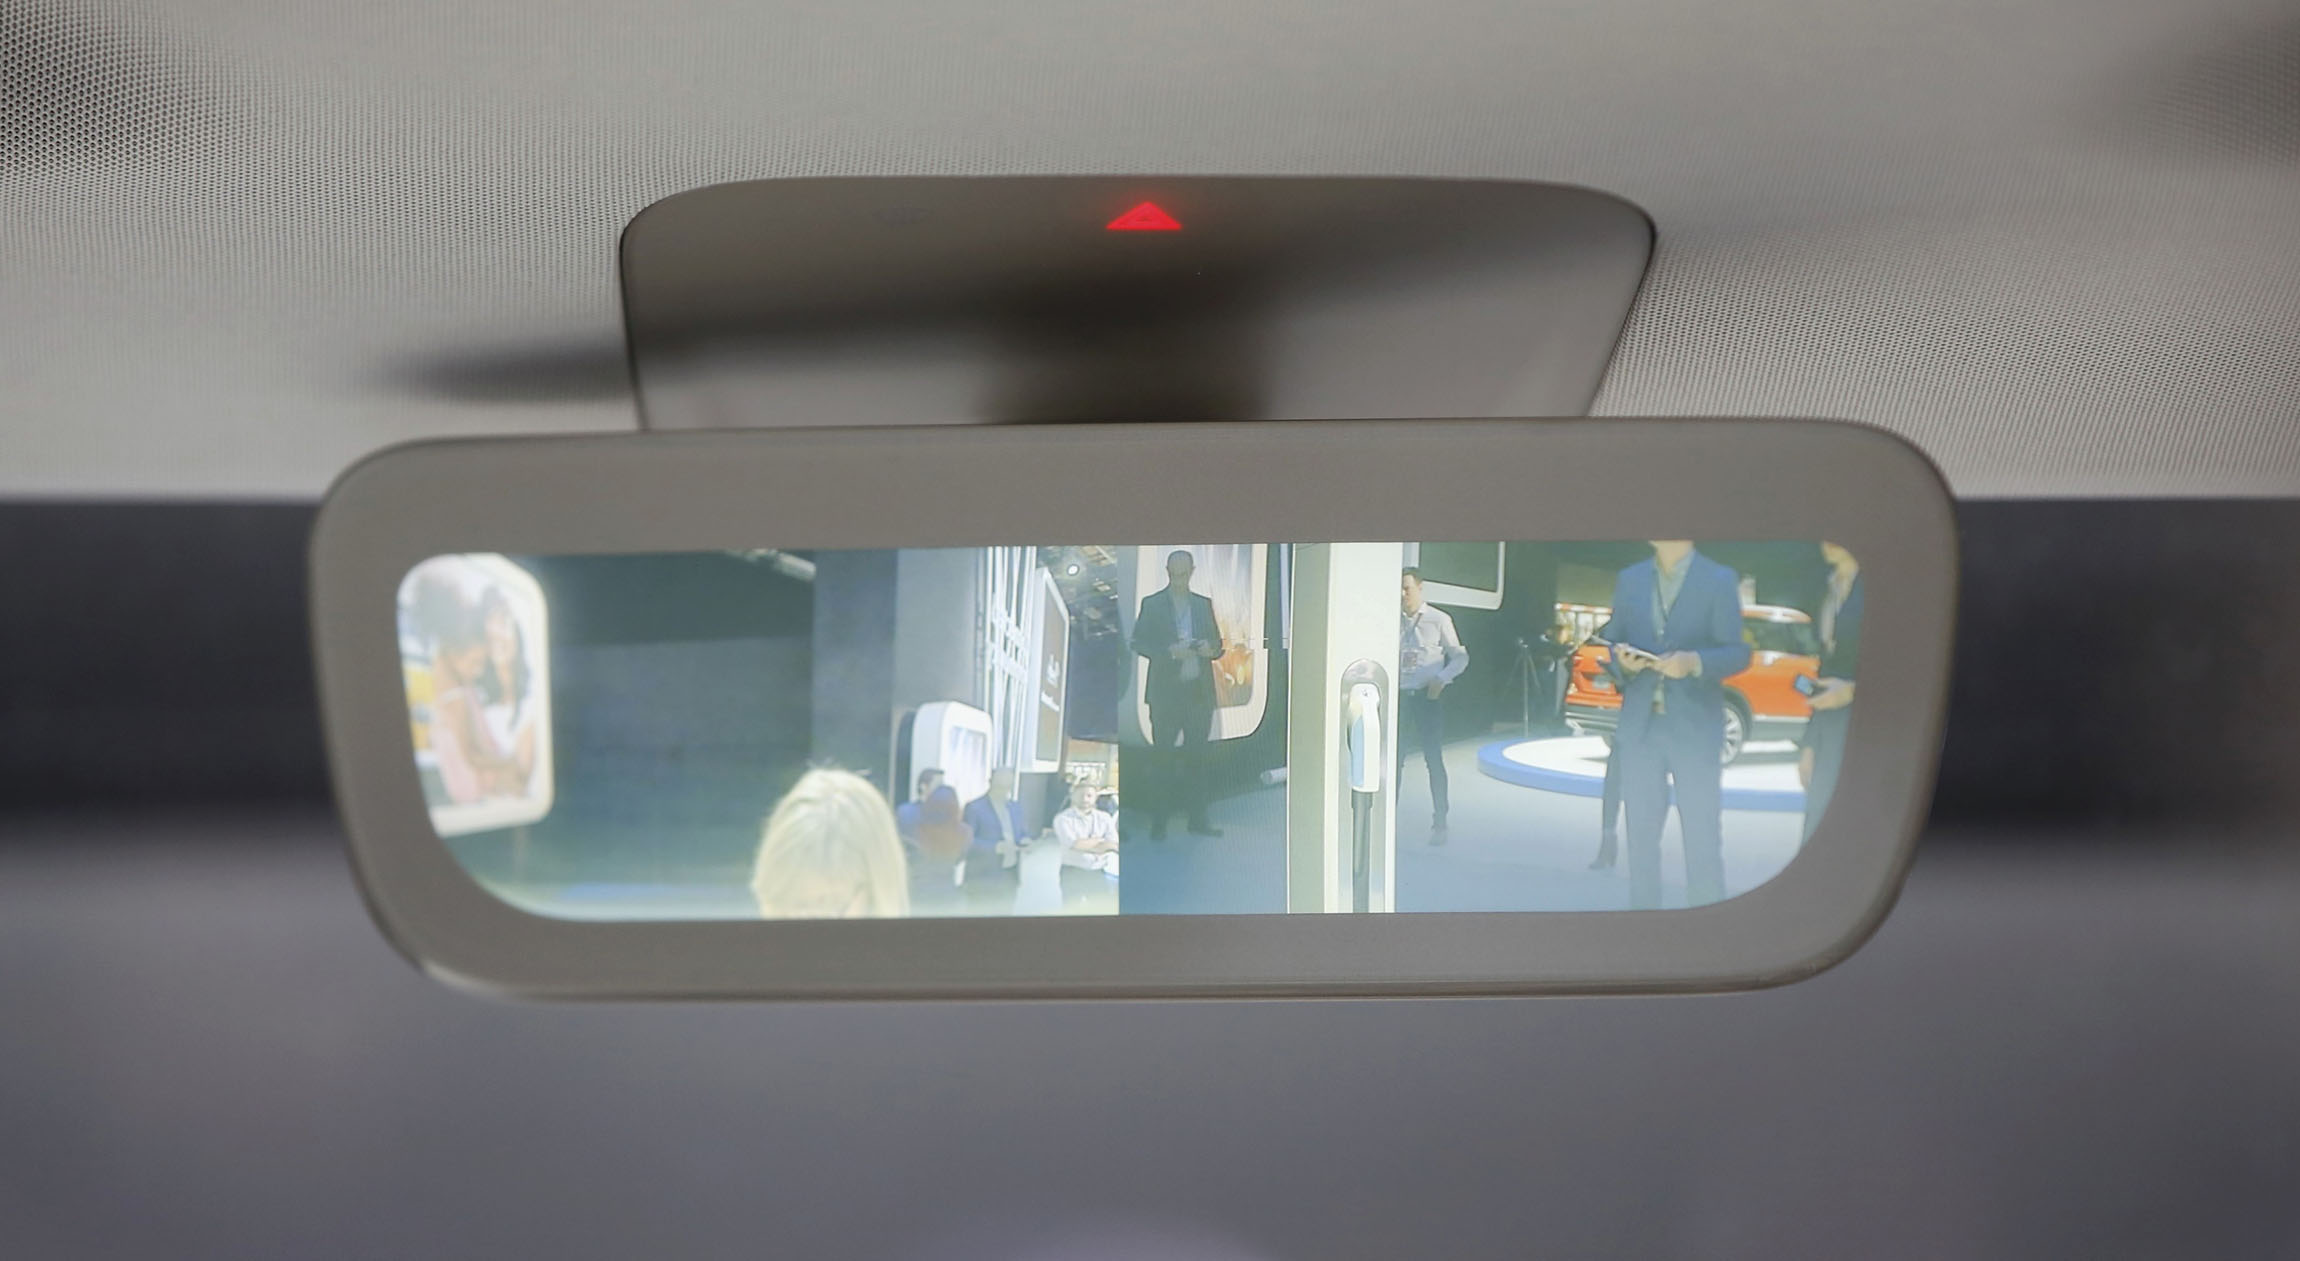 Auto show visitors are seen in the rear view mirror of a Volkswagen I.D. Buzz electric concept vehicle being displayed during the North American International Auto Show in Detroit